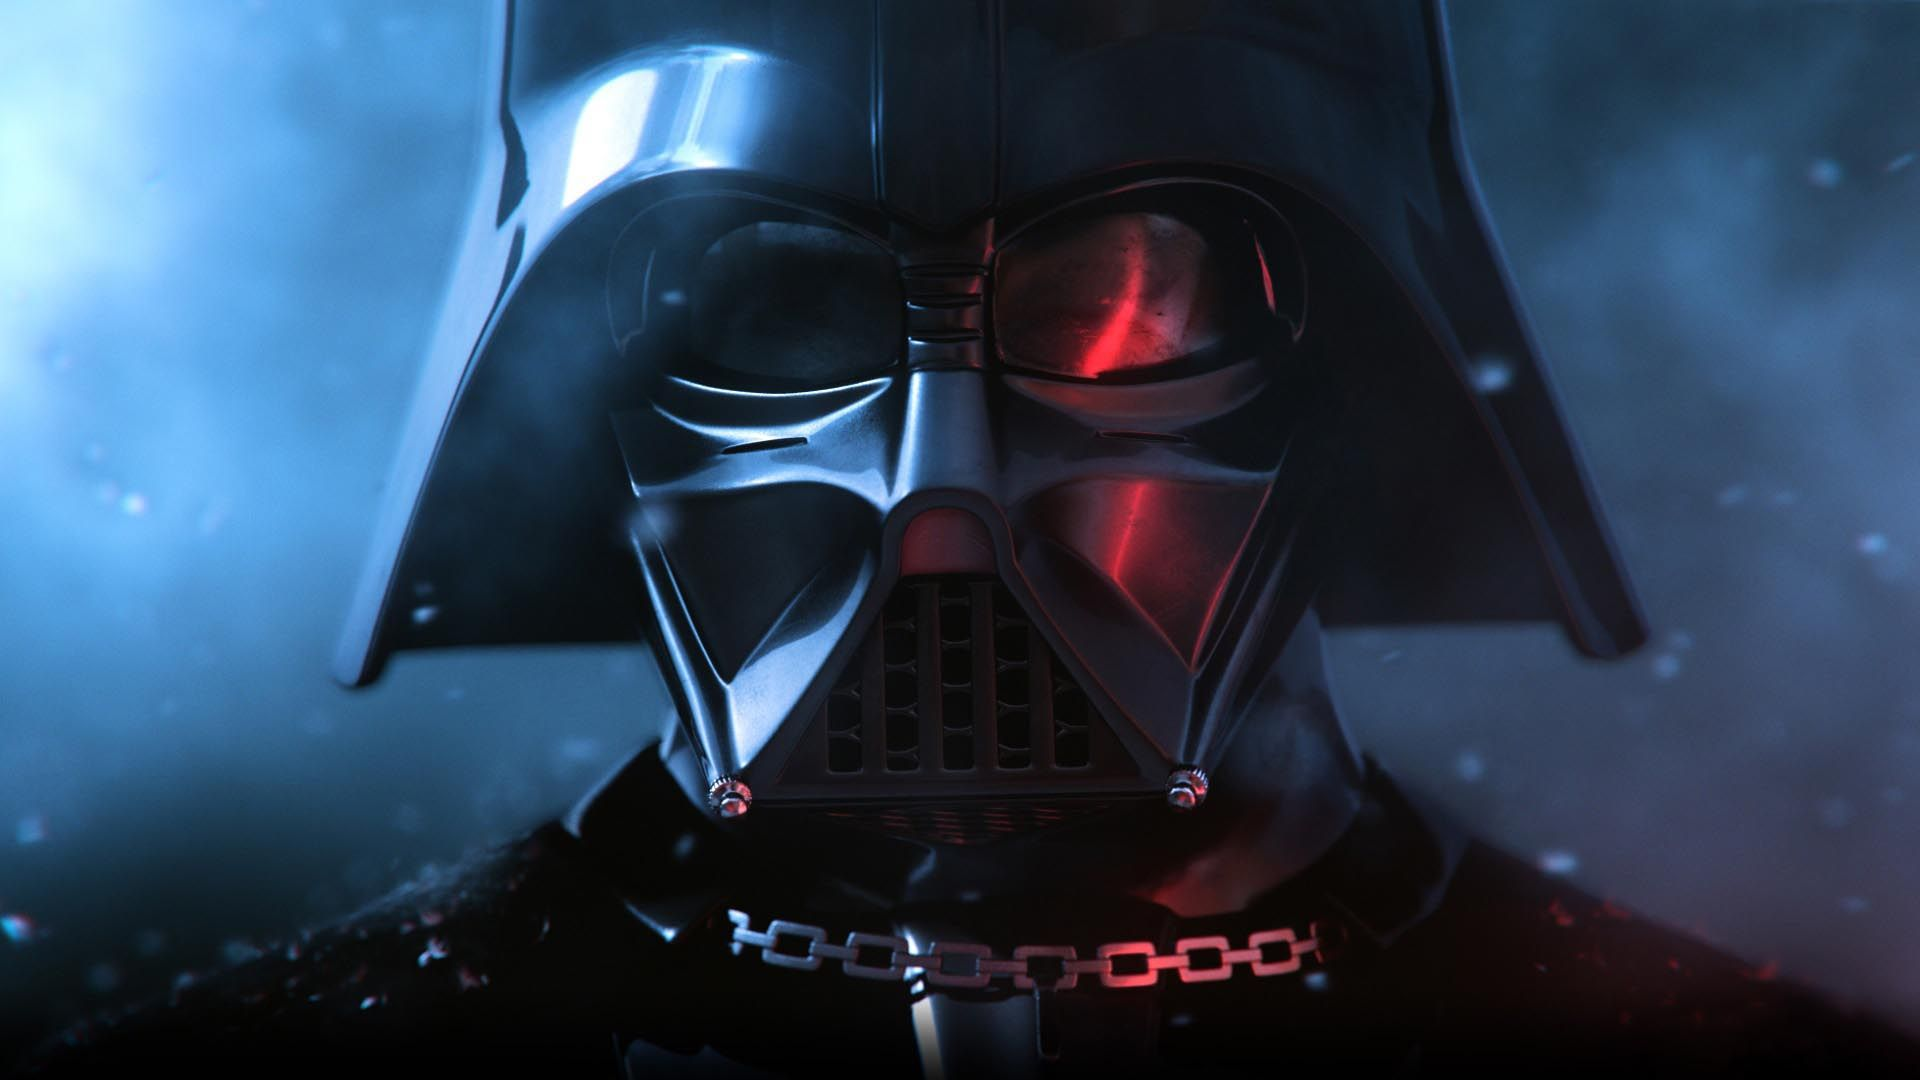 Wallpapers Star Wars Darth Vader Full Hd 1920x1080 Phone